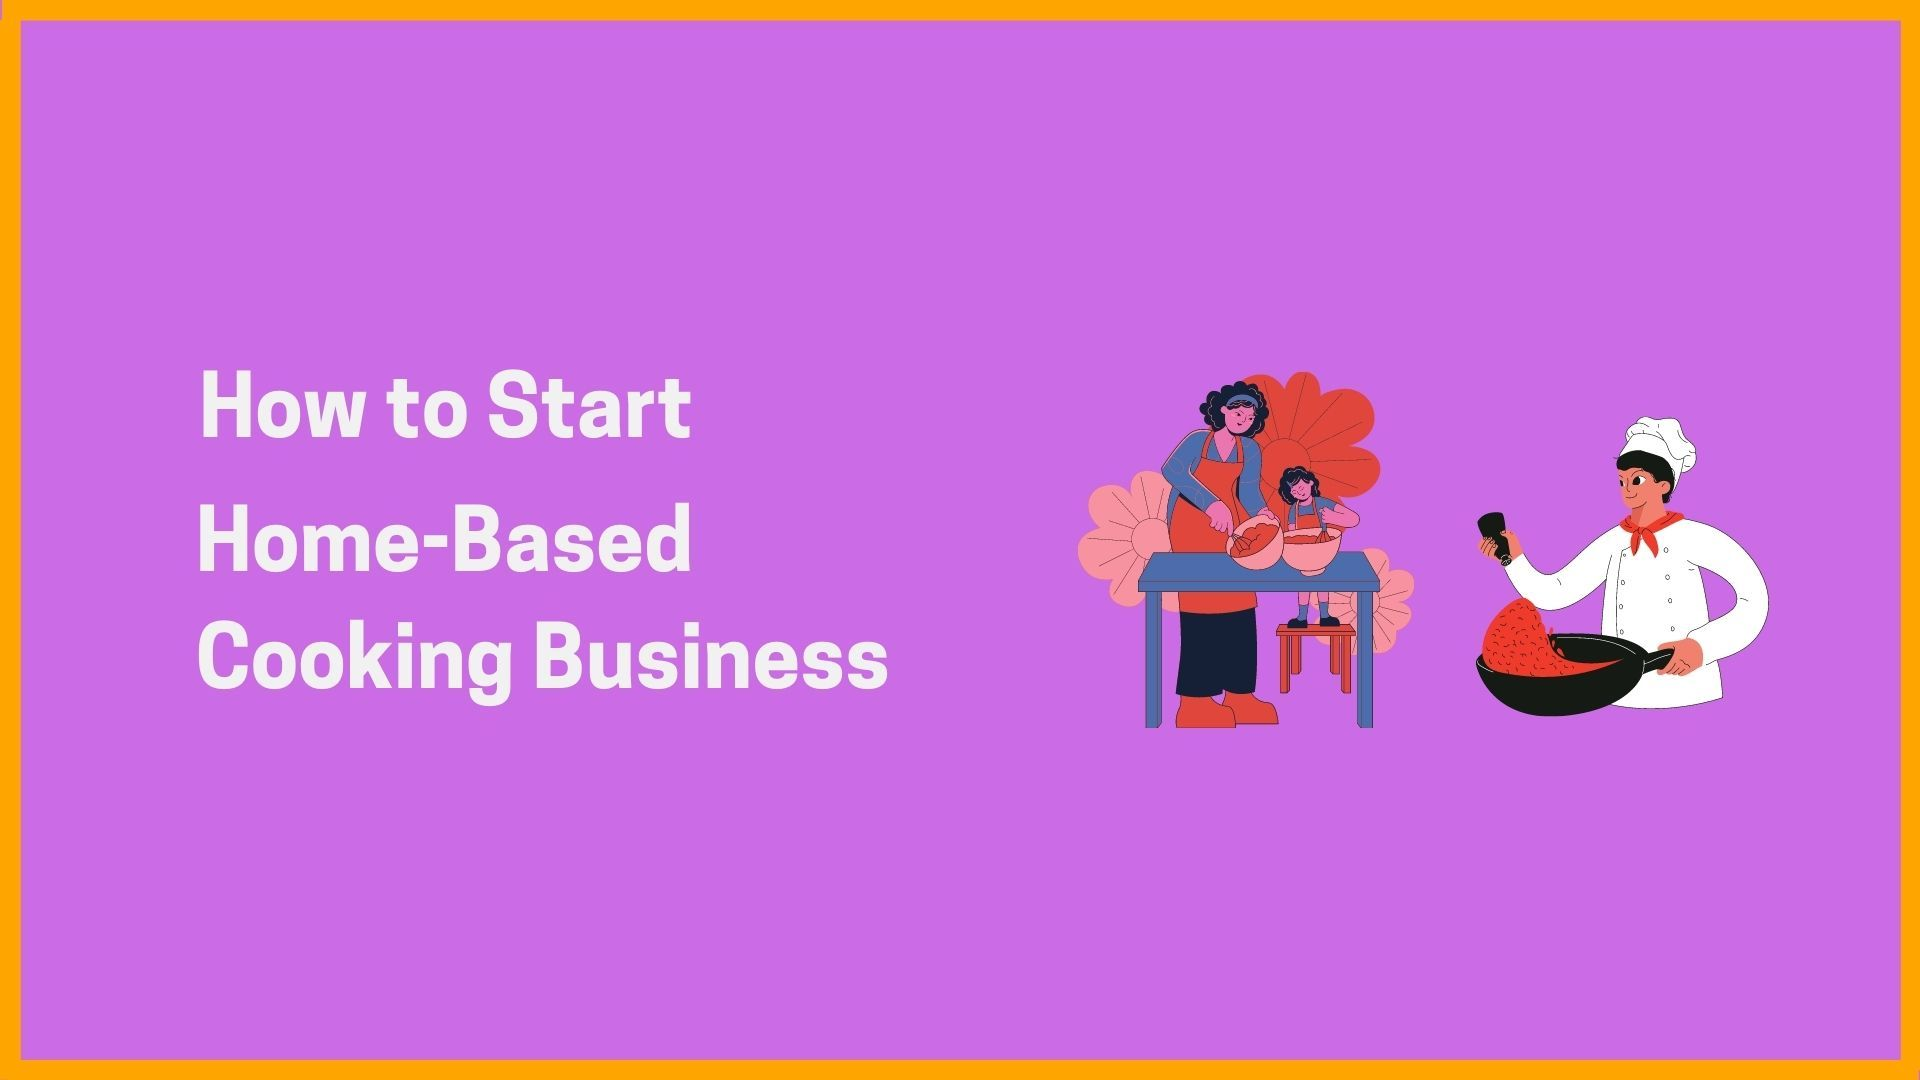 How to Start Home-Based Cooking Business